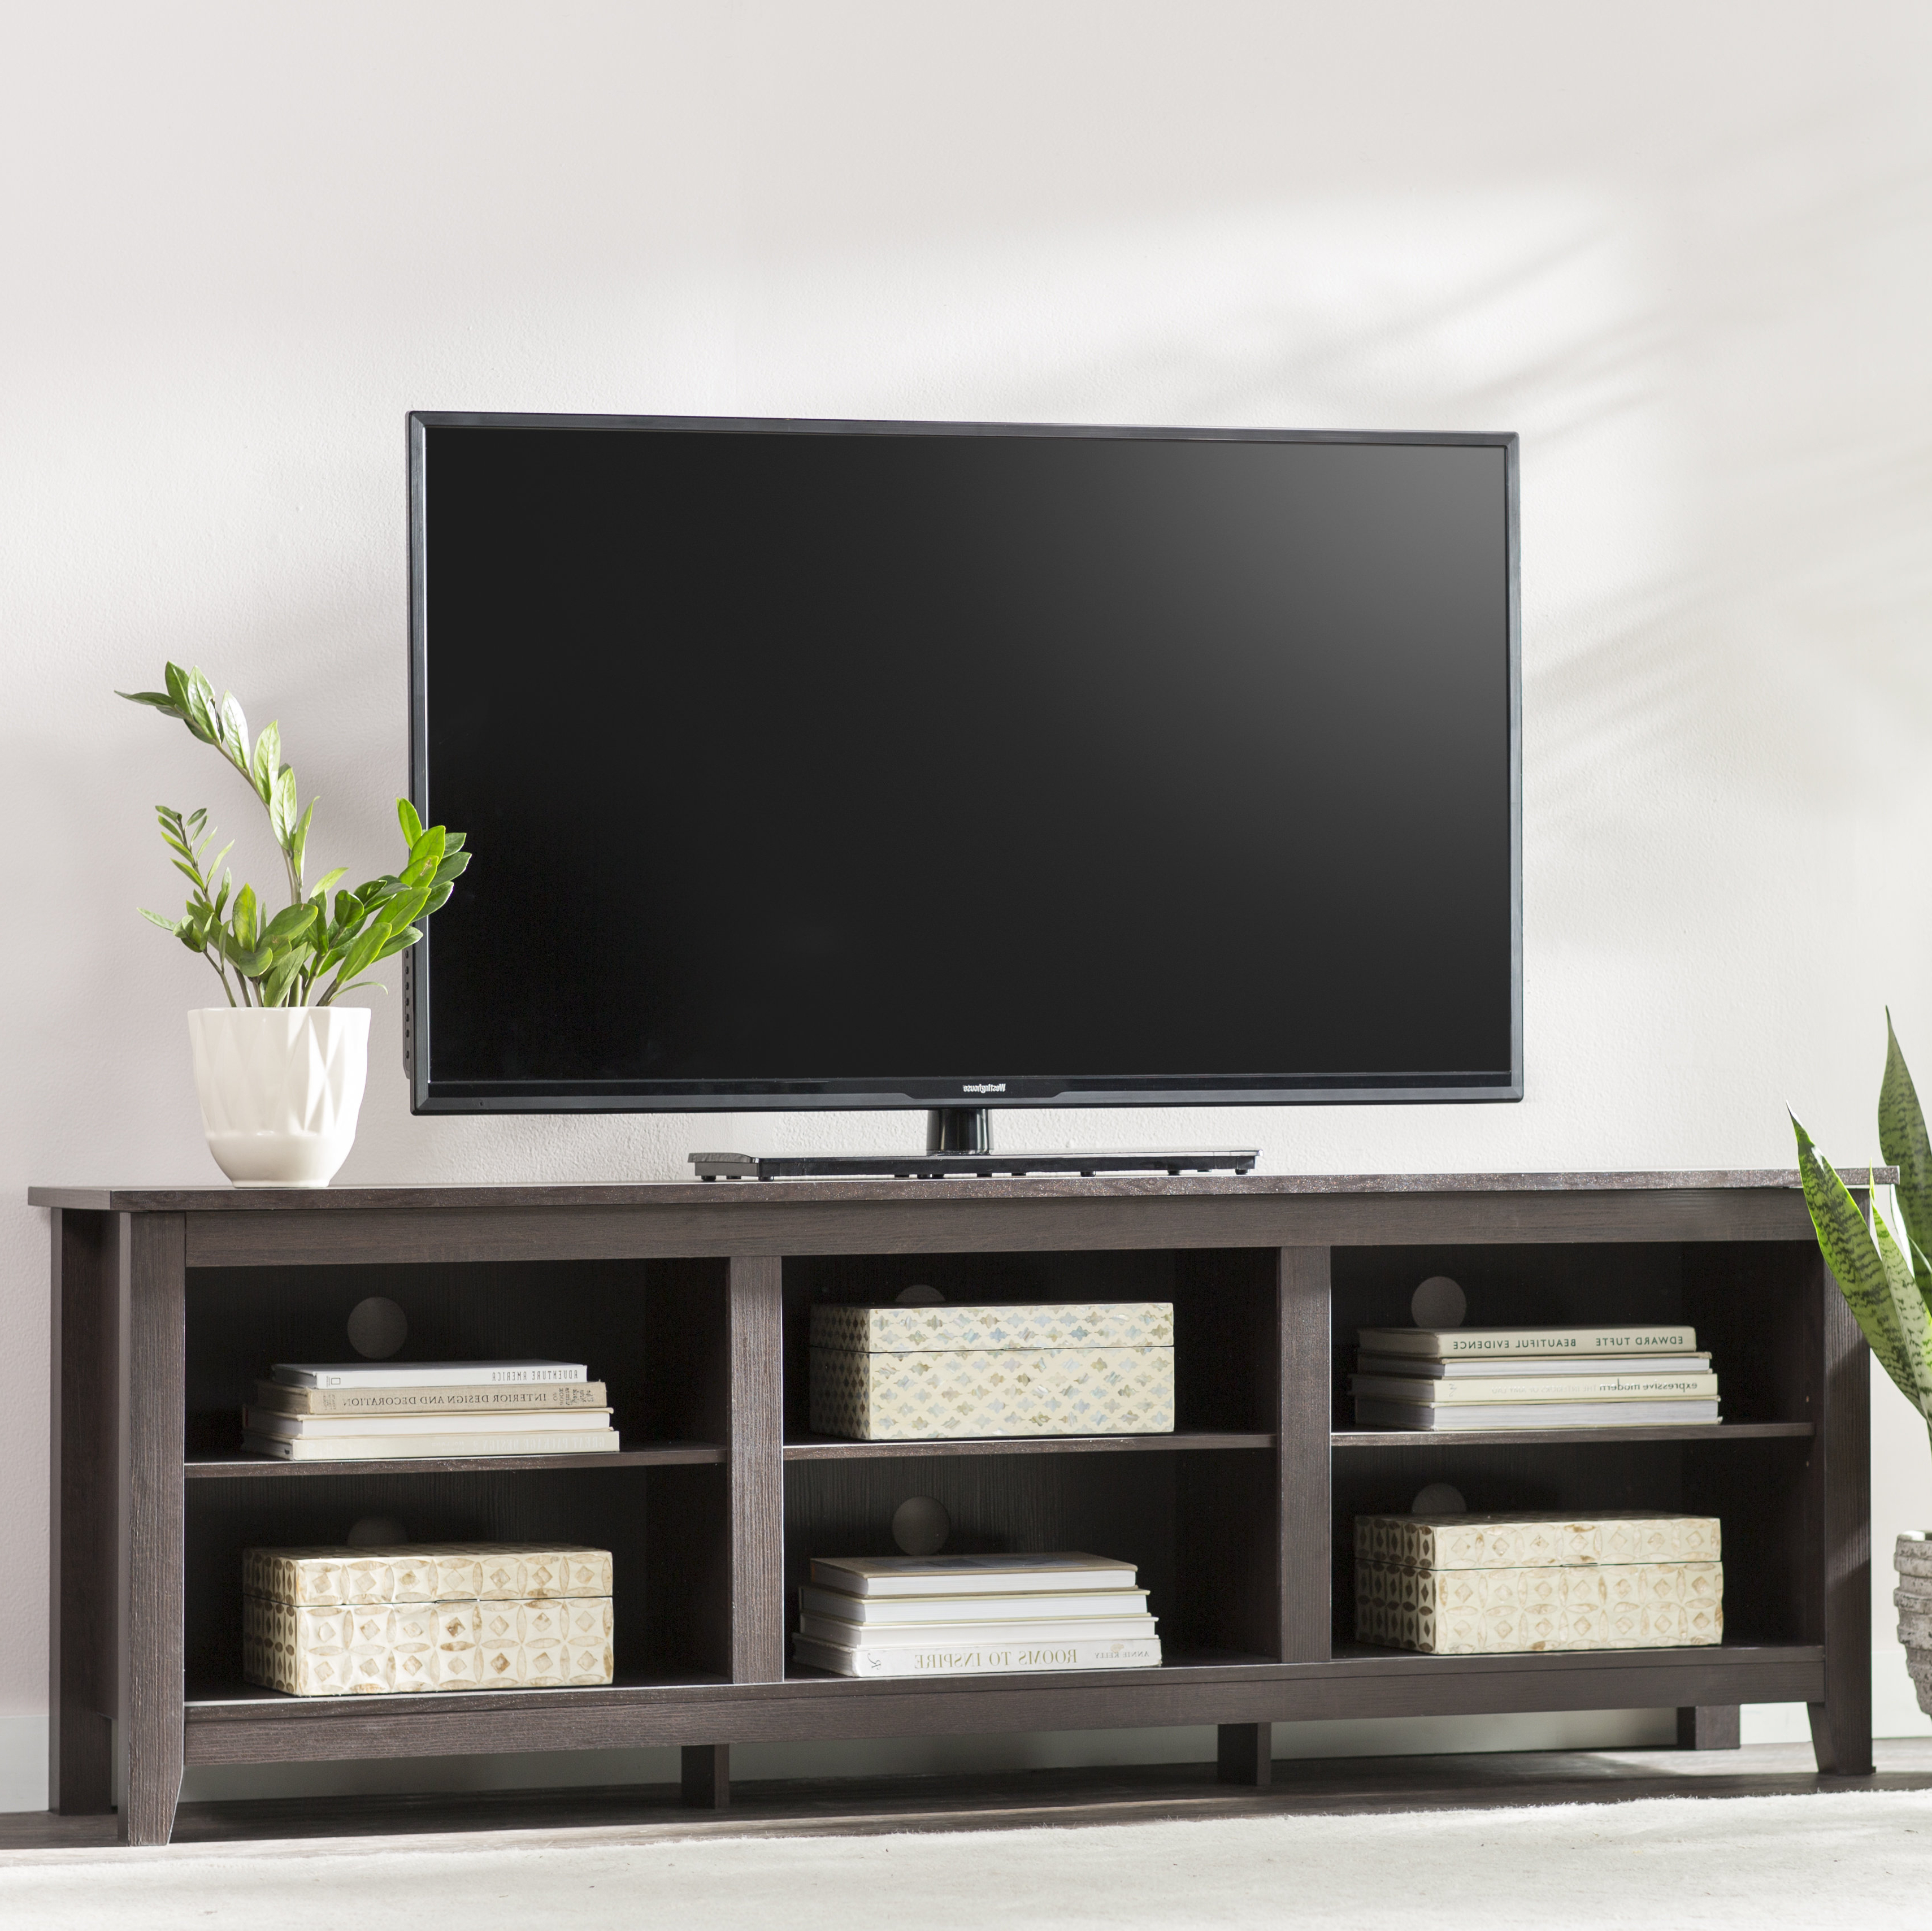 Tv Stand For 65 Inch Tv Corner | Wayfair With Regard To Century Blue 60 Inch Tv Stands (Gallery 15 of 20)